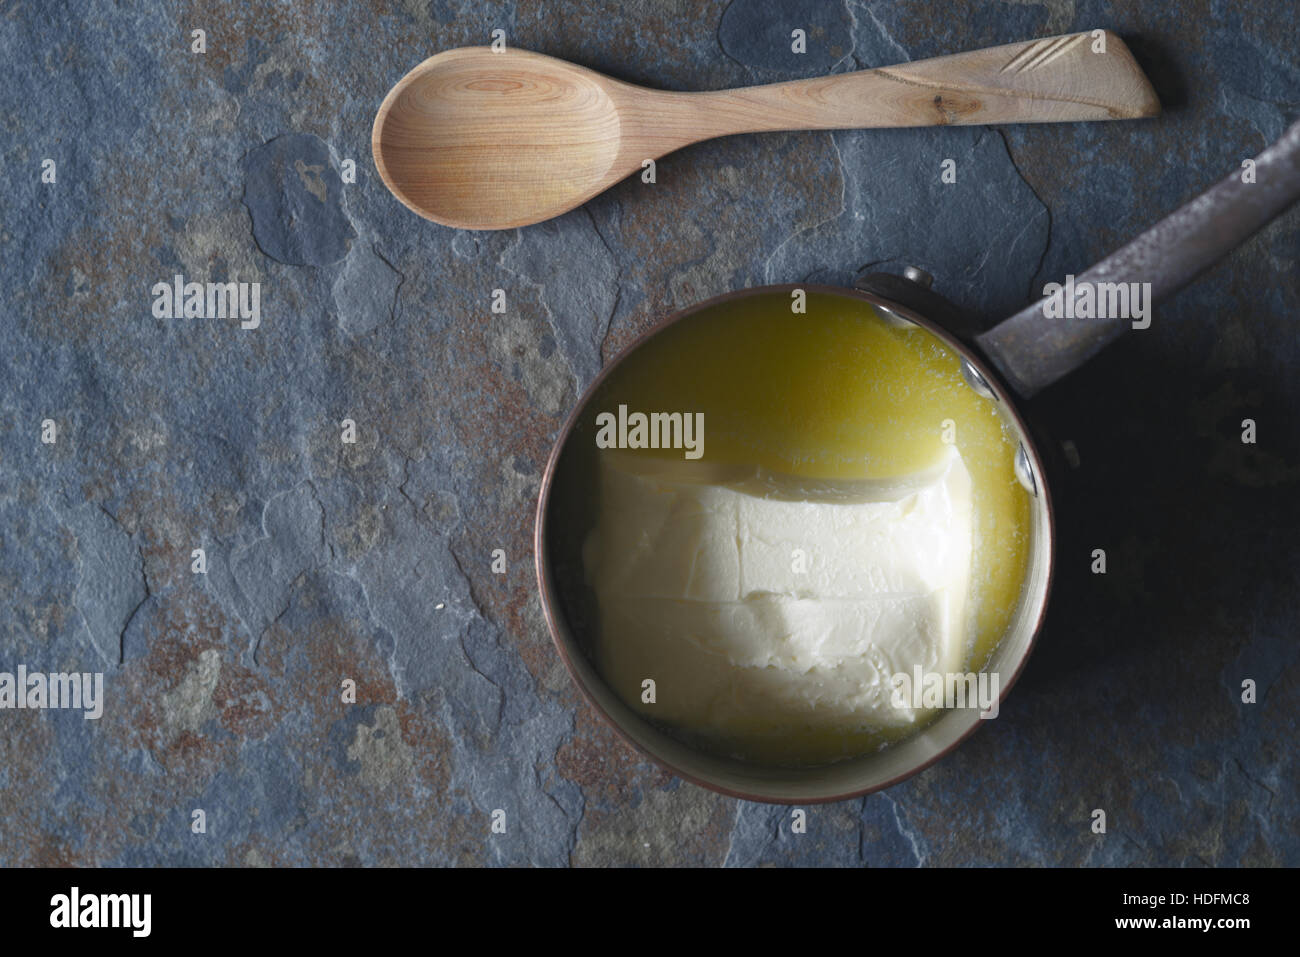 Melted butter in the stewpan on the stone background top view - Stock Image